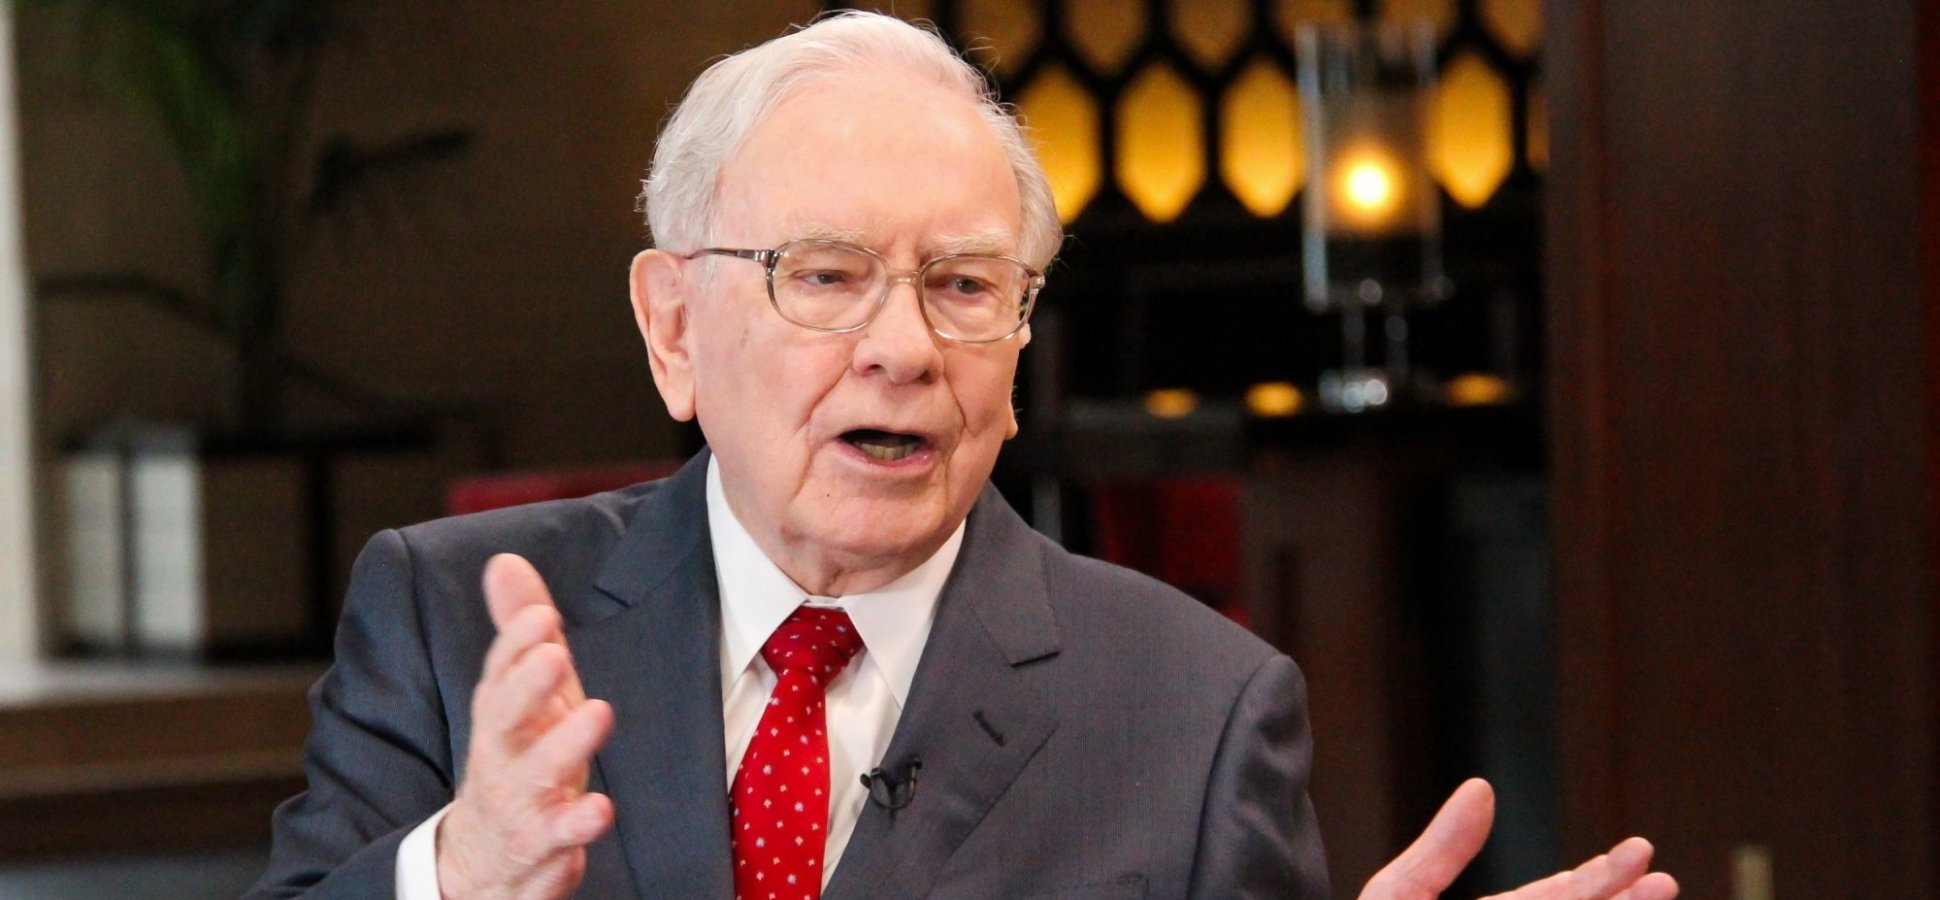 Warren Buffett Says You Should Hire People With These 3 Traits, but Only 1 Will Point to a Truly Successful Employee